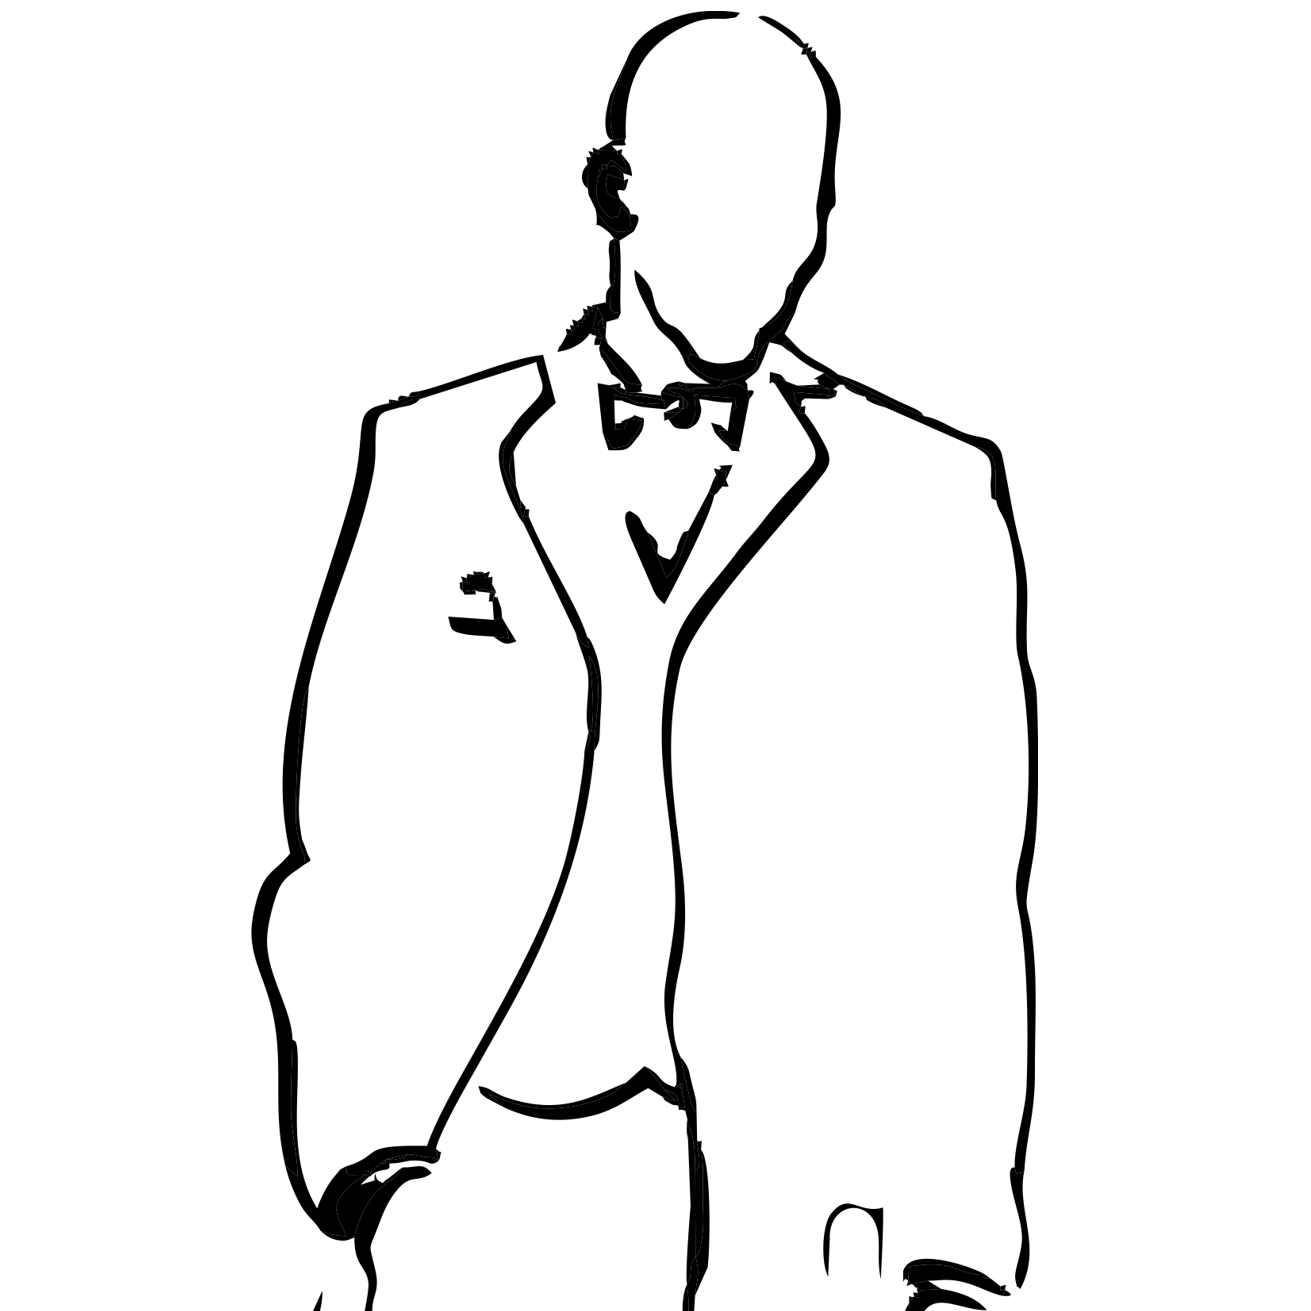 Free Wedding Usher Cliparts, Download Free Clip Art, Free